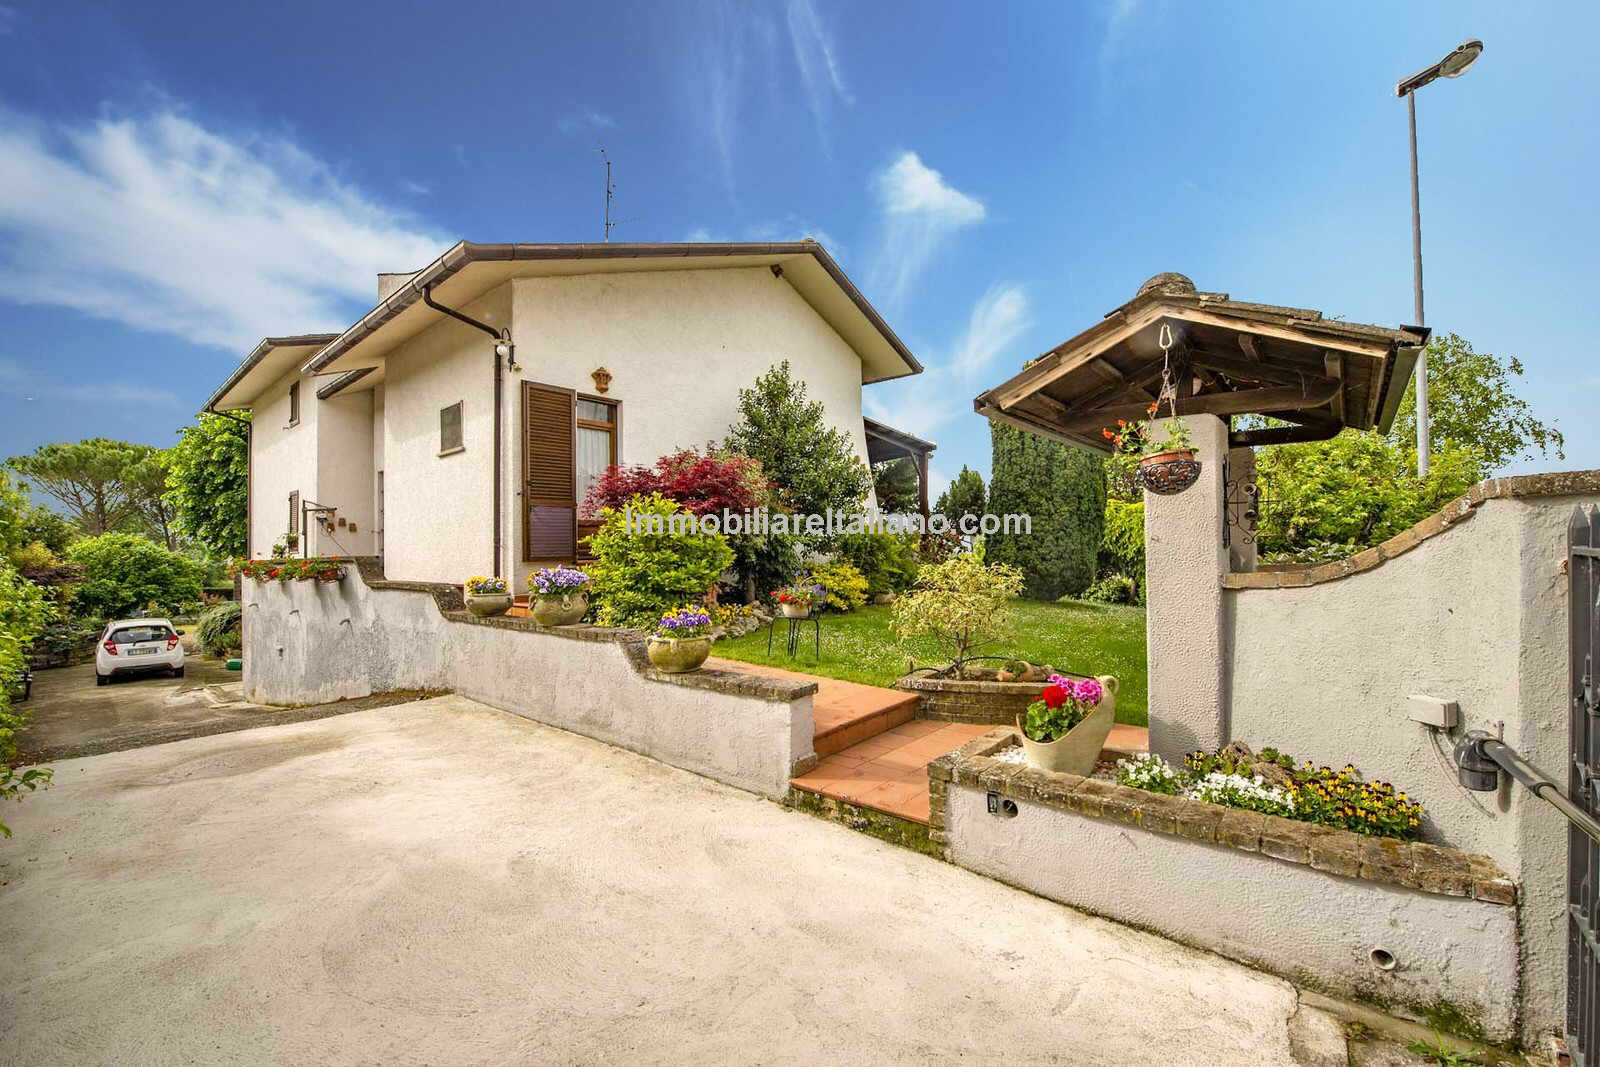 External view of Bargain priced property in Italy - Detached villa home with garden